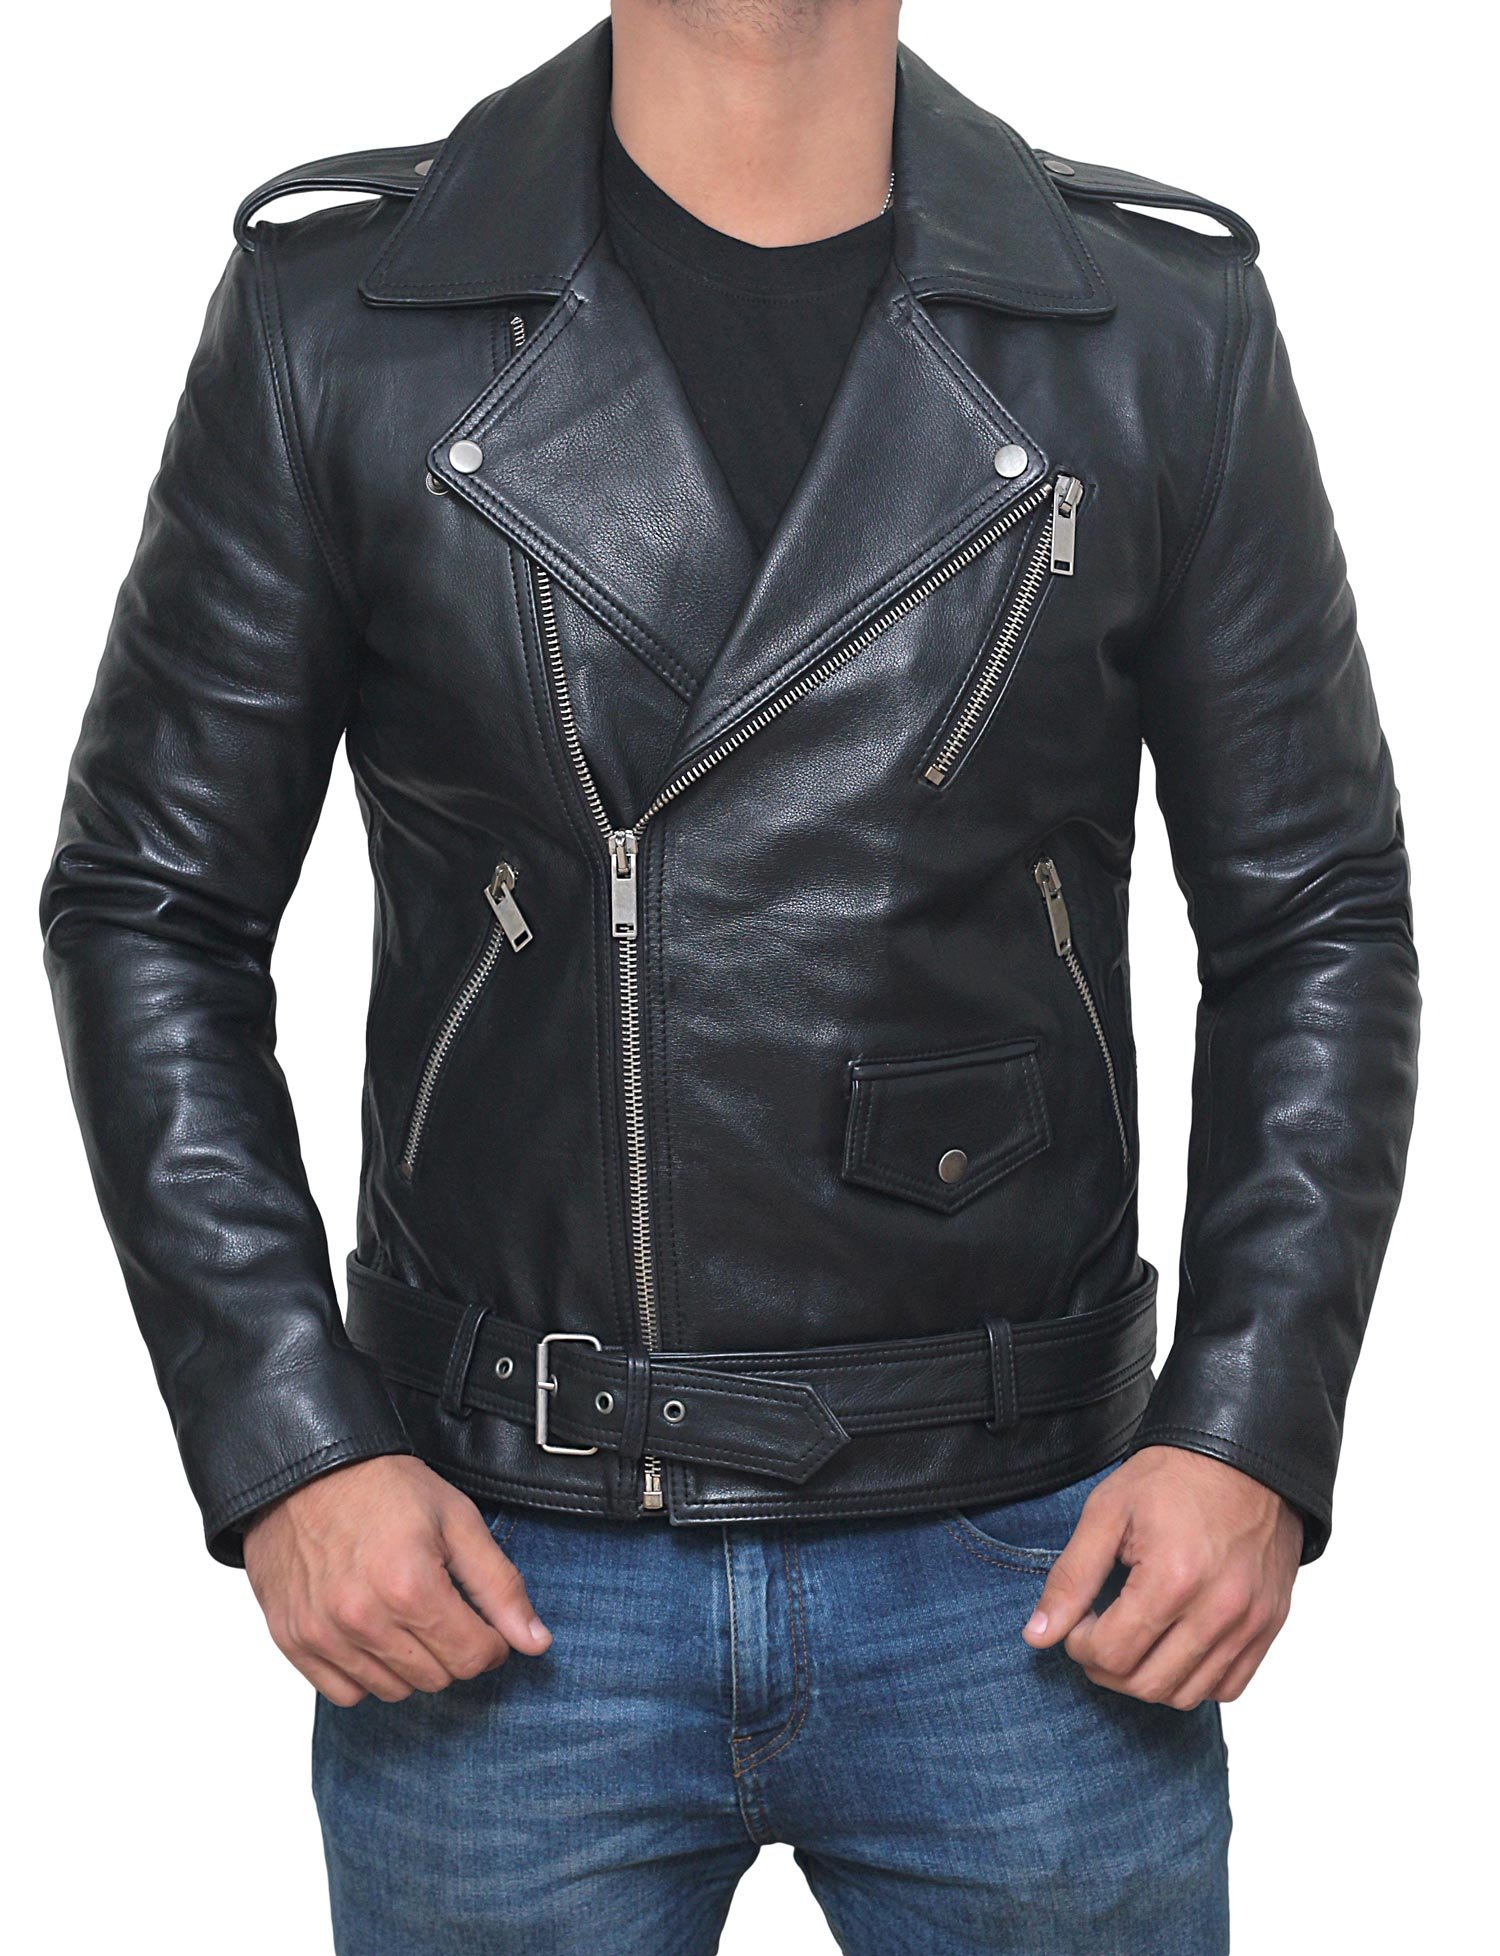 Mens Belted Rider Mens Jacket - Black Leather Motorcycle Jacket | Real Belted Rider, L